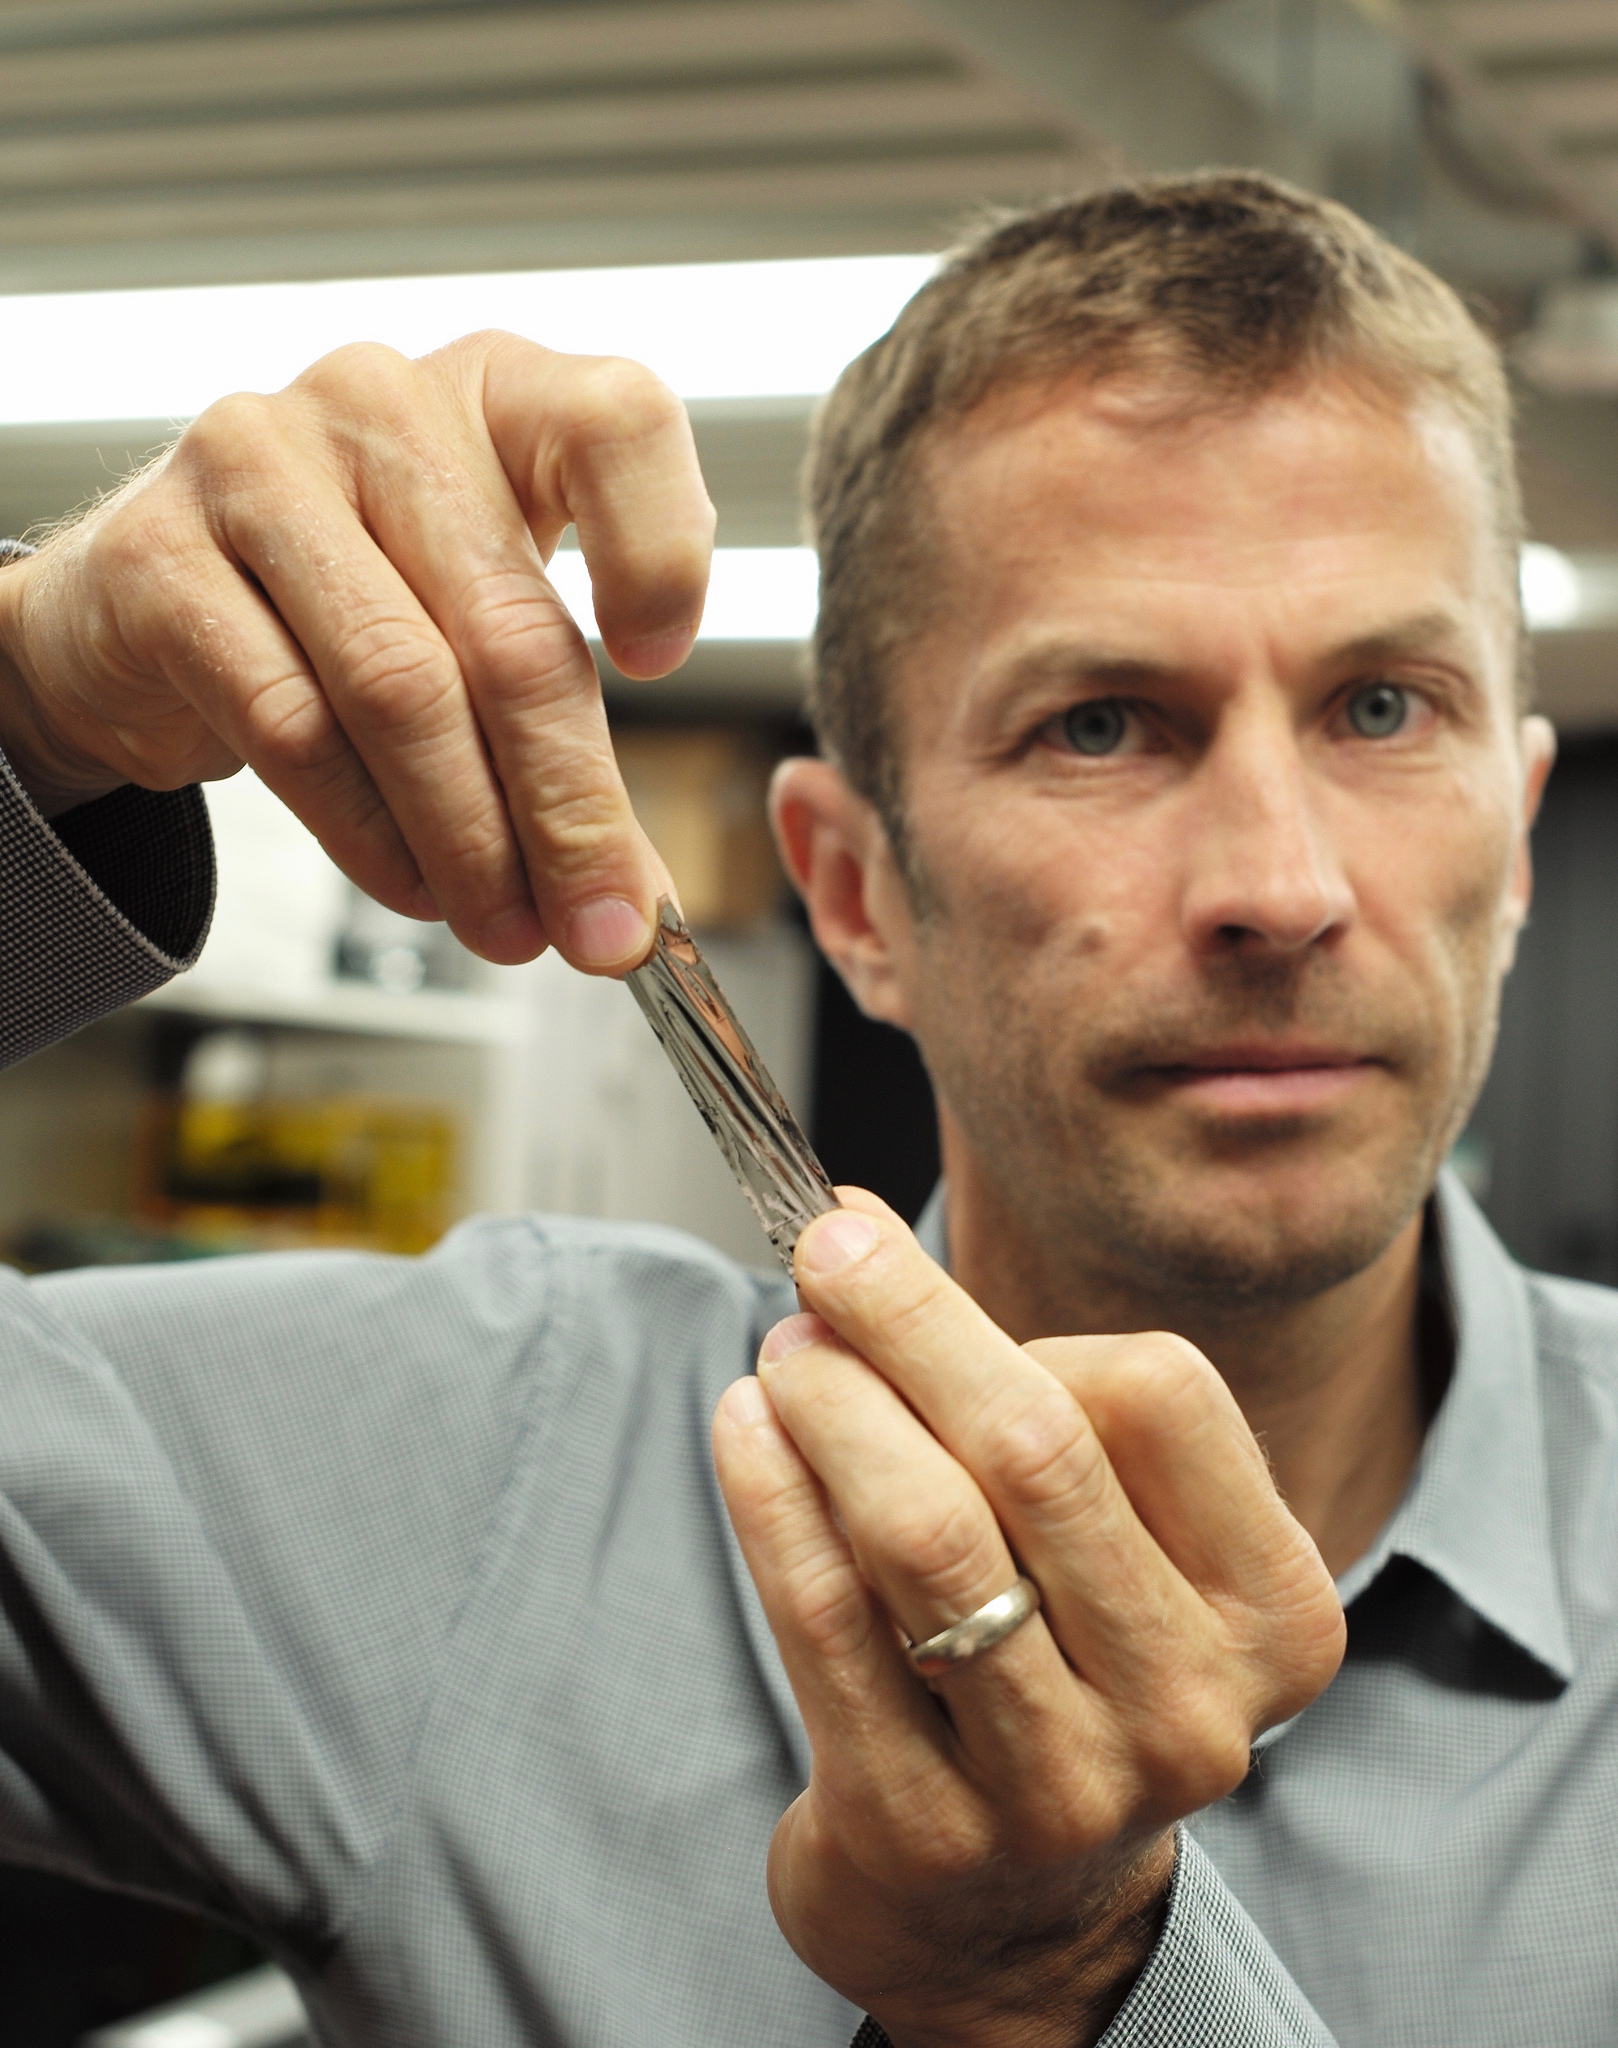 Ibm and sony cram up to 330 terabytes into tiny tape cartridge enlarge ibms mark lantz holding one square inch of the new super dense magnetic tape sony can squeeze more than a kilometre of tape inside a cartridge urmus Image collections